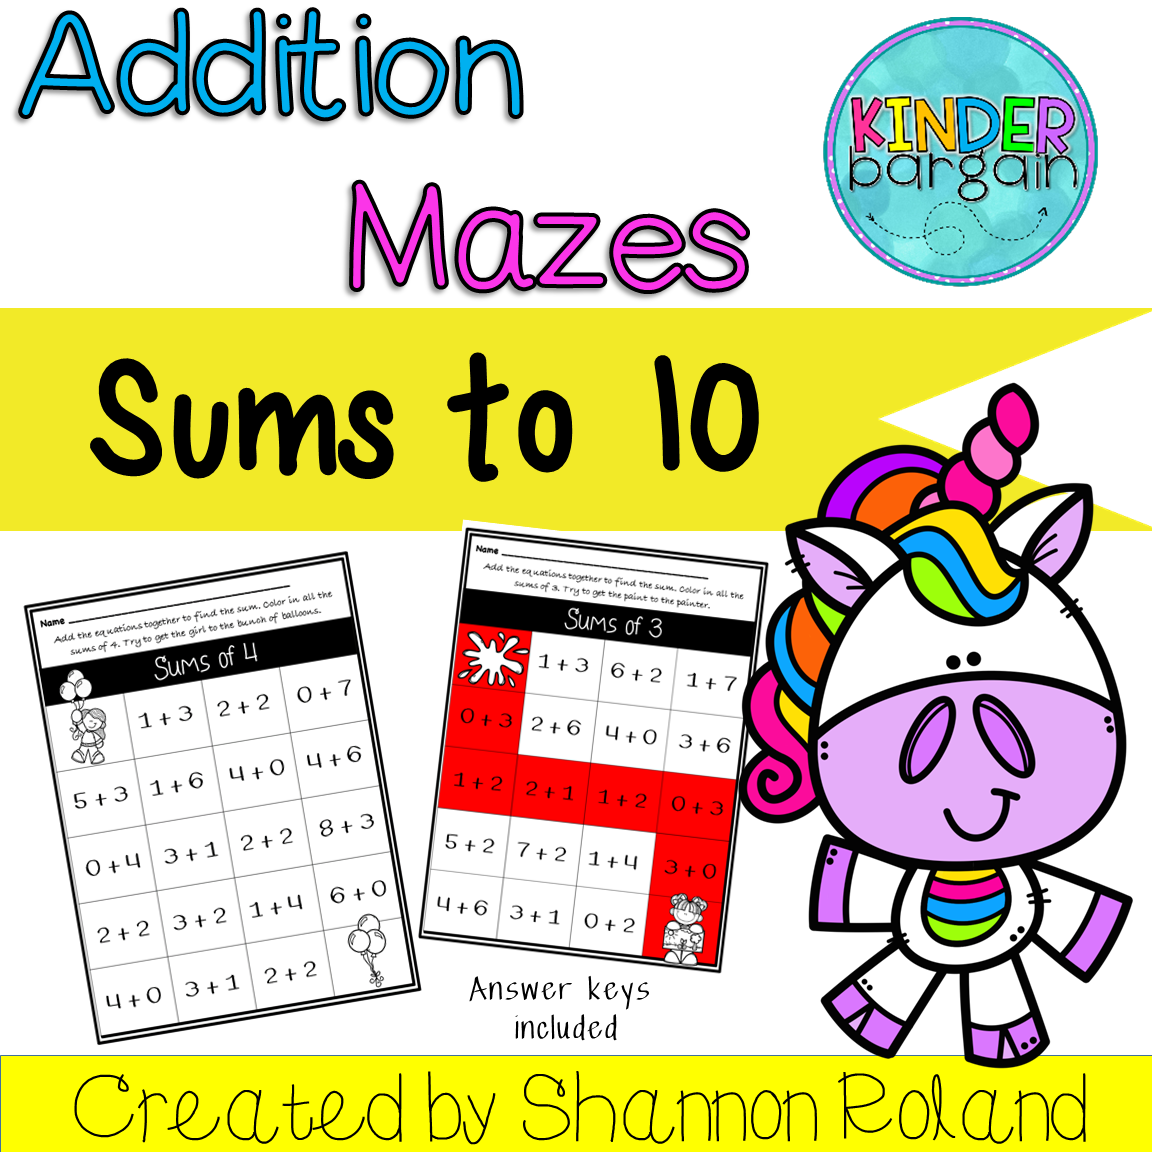 Addition Worksheets Sums To 10 Mazes With Images